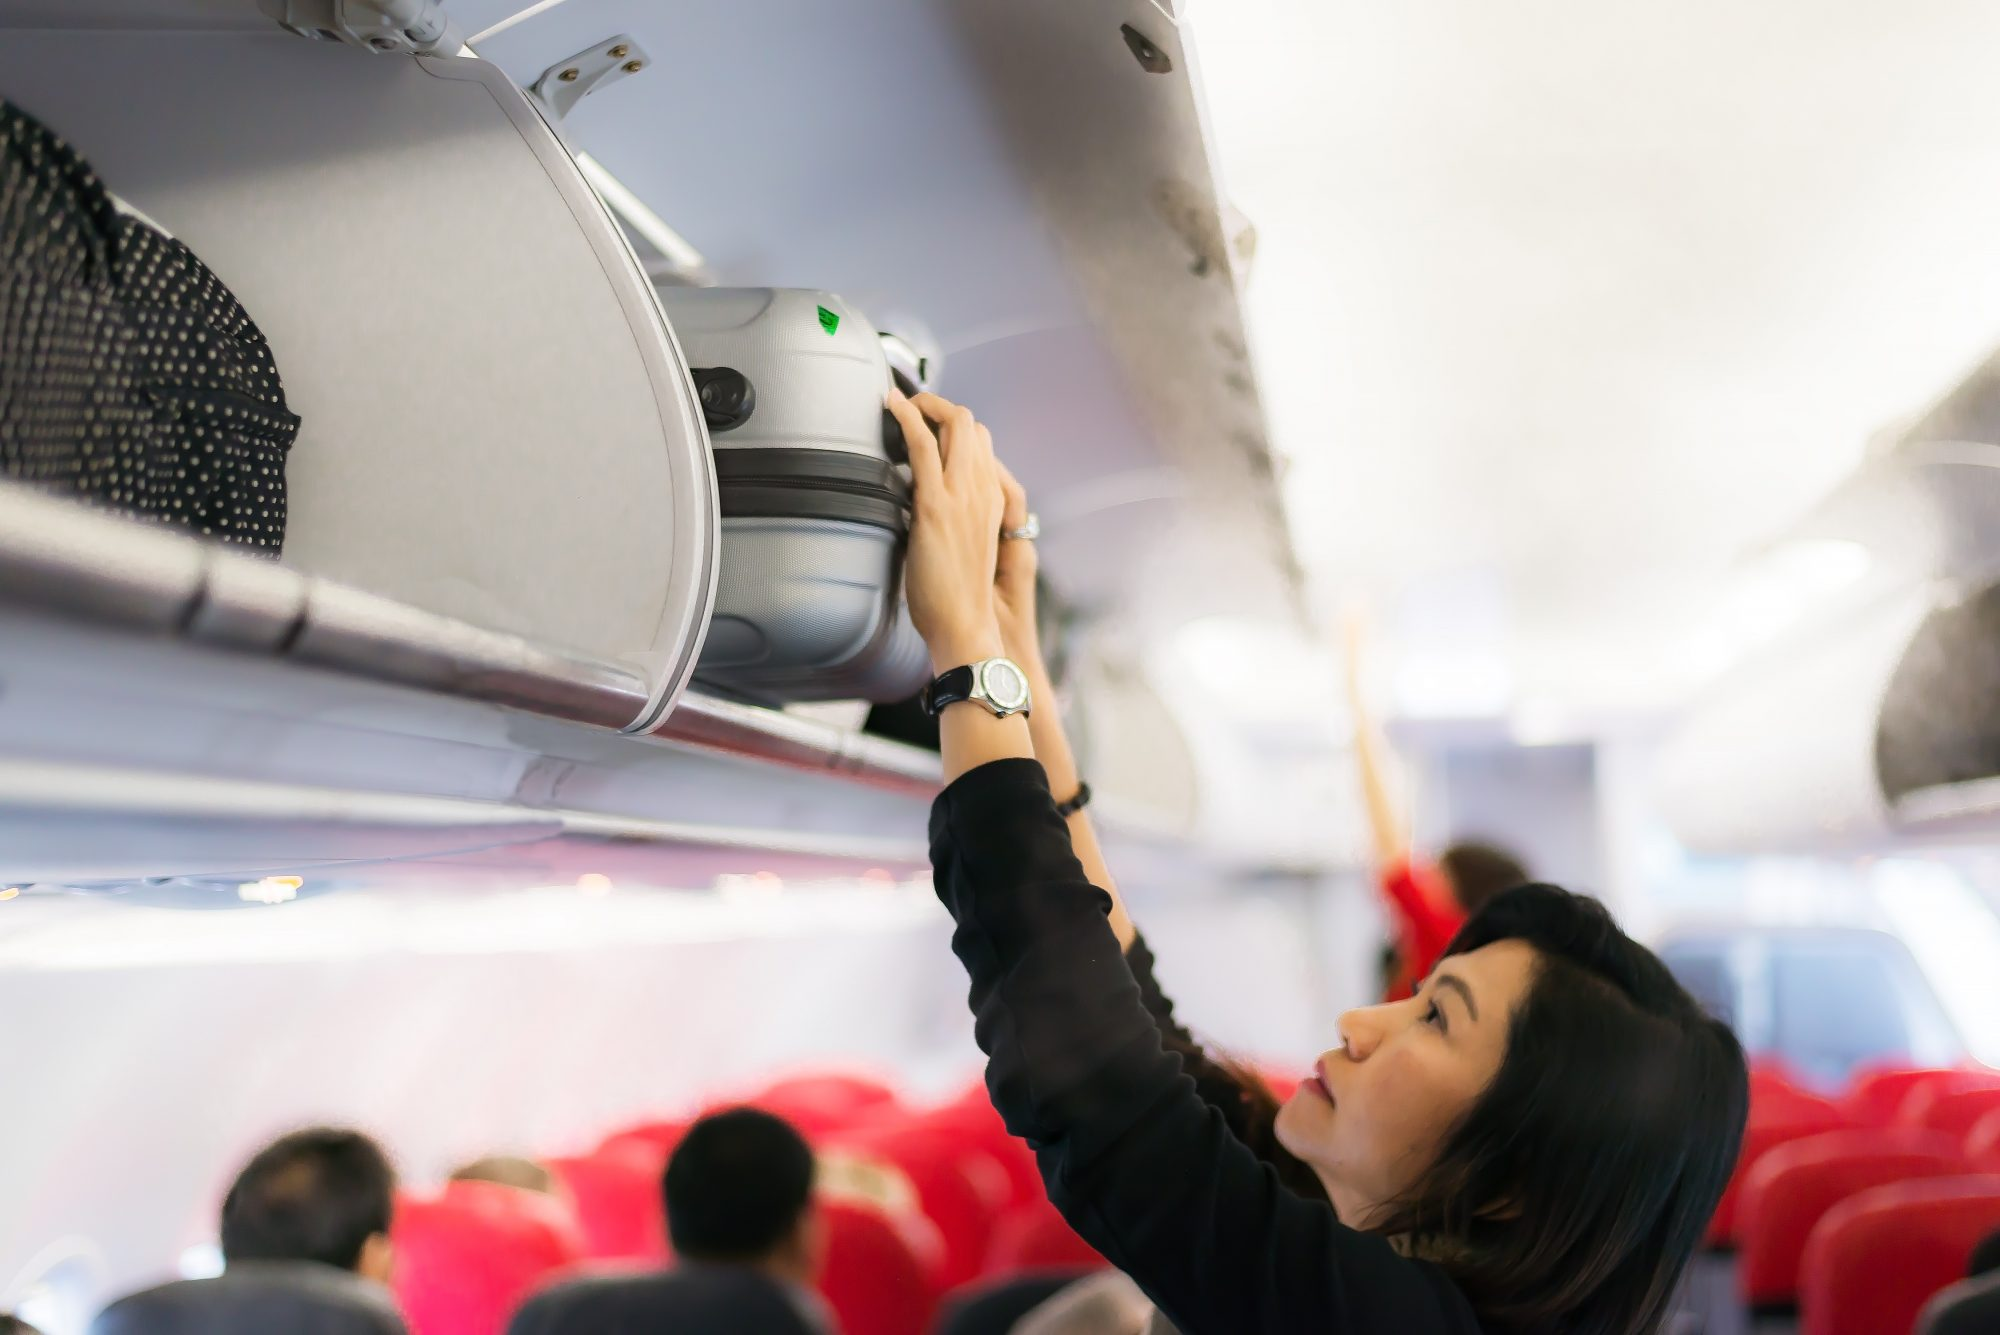 woman putting luggage in overhead bin